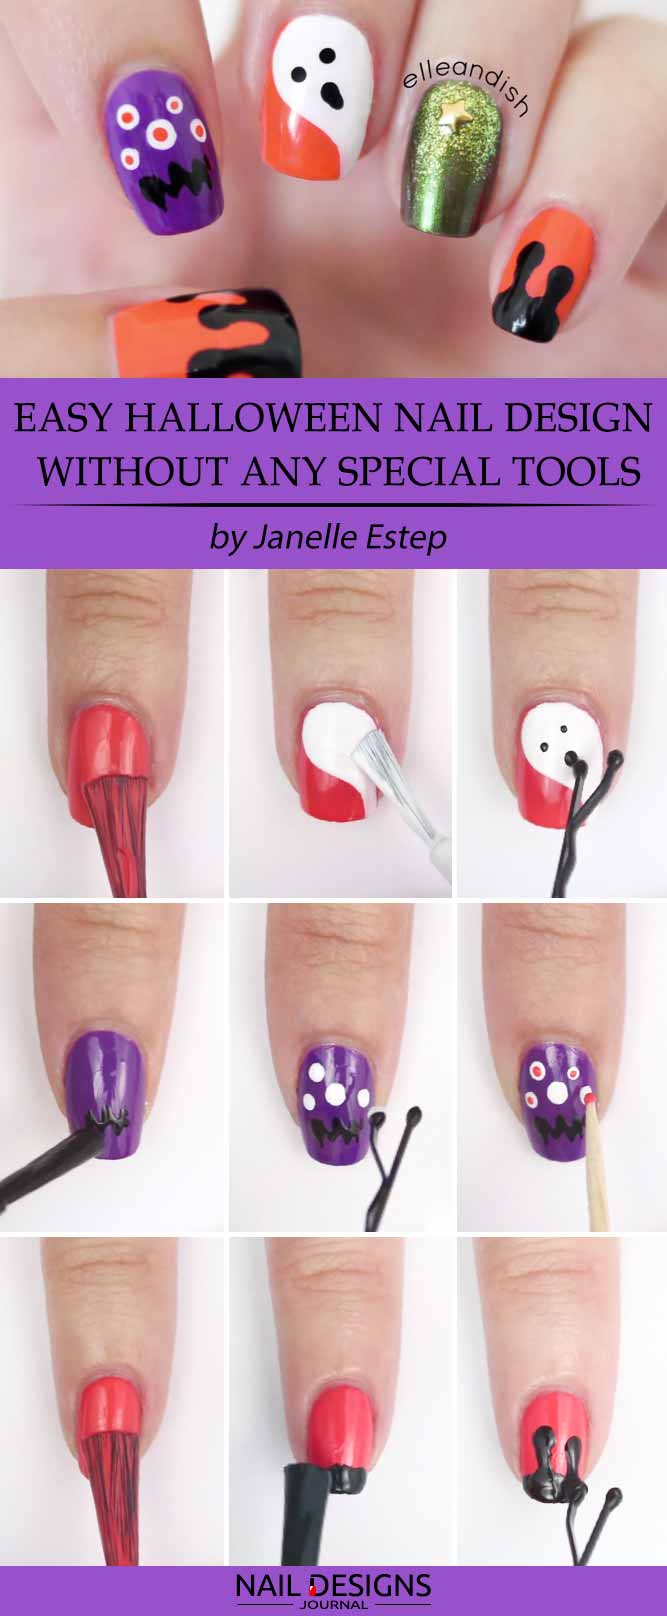 Easy Halloween Nail Design without Any Special Tools